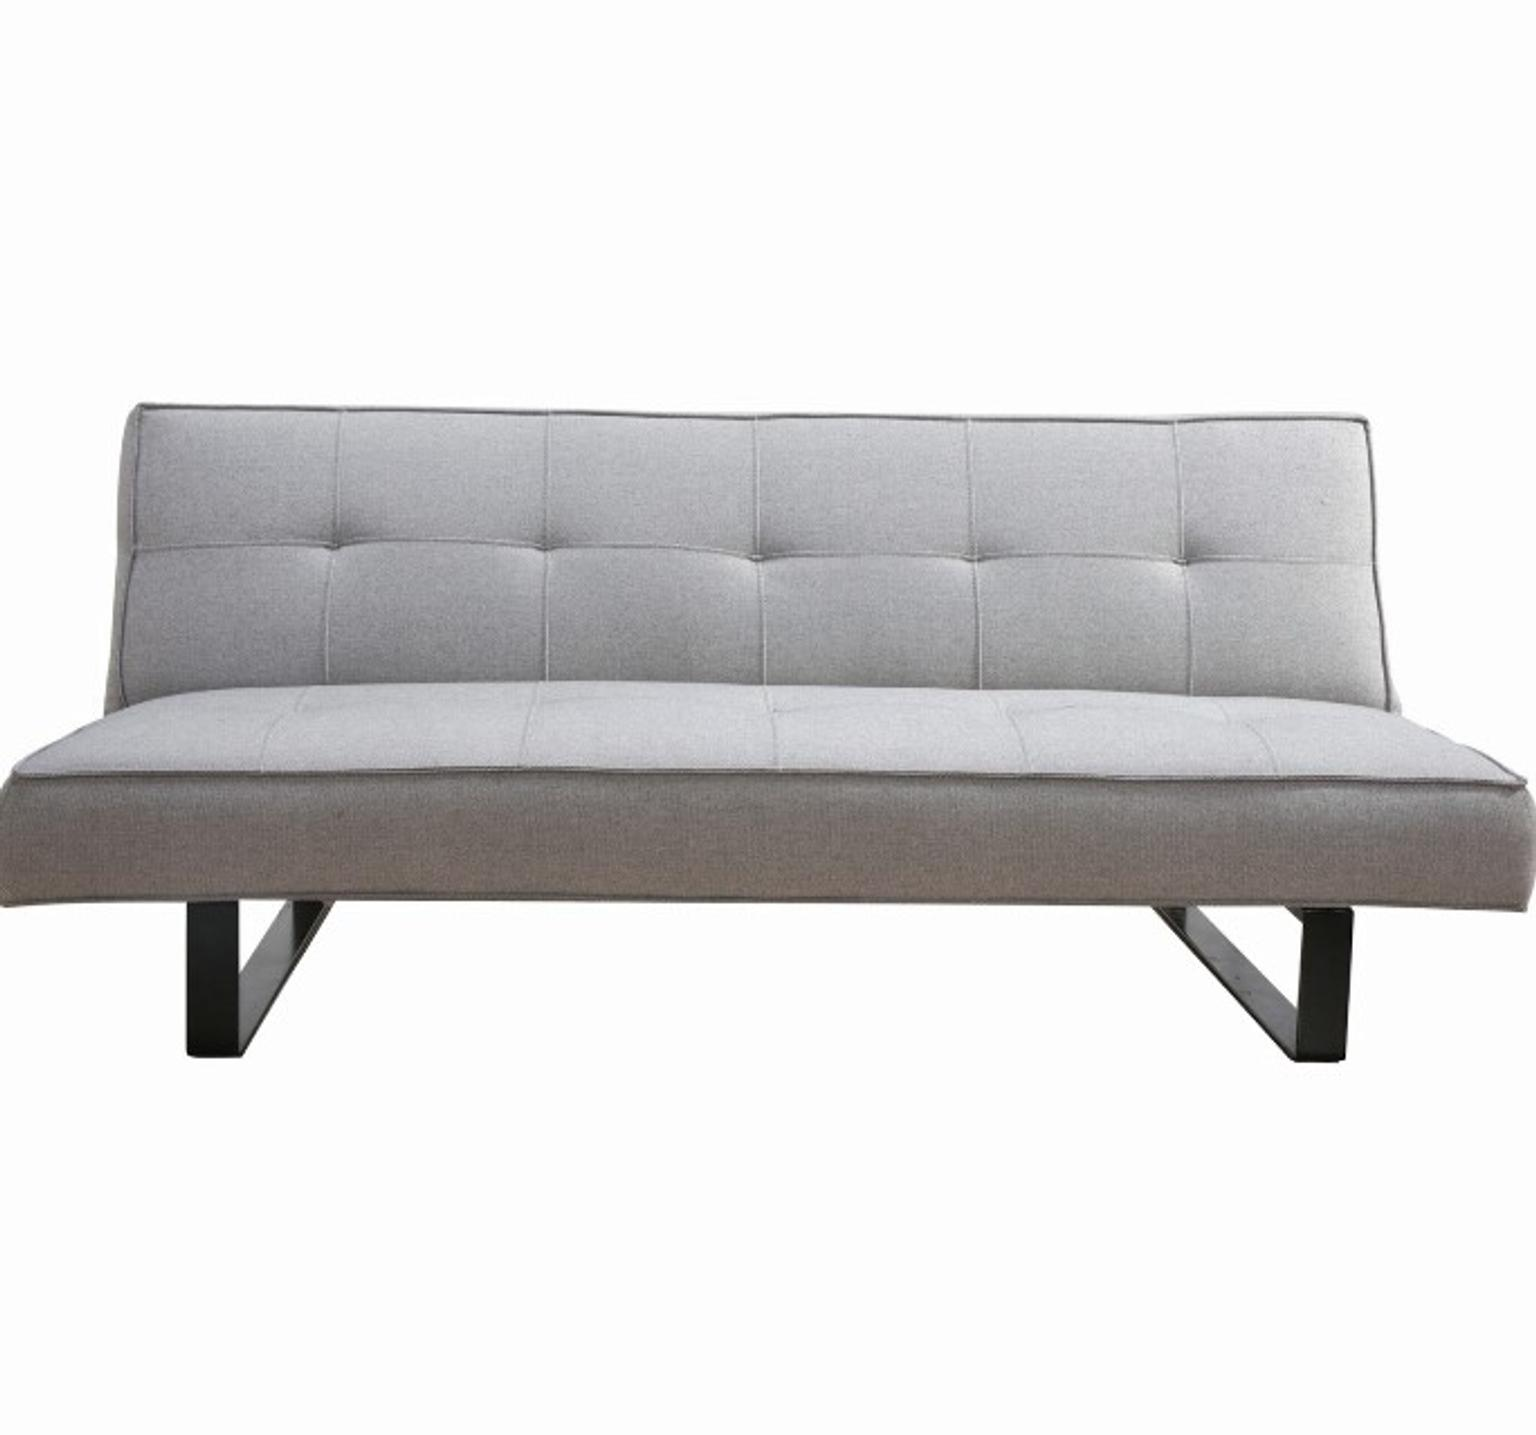 john lewis sofa bed best way to clean stains in sp10 test valley for 130 00 shpock